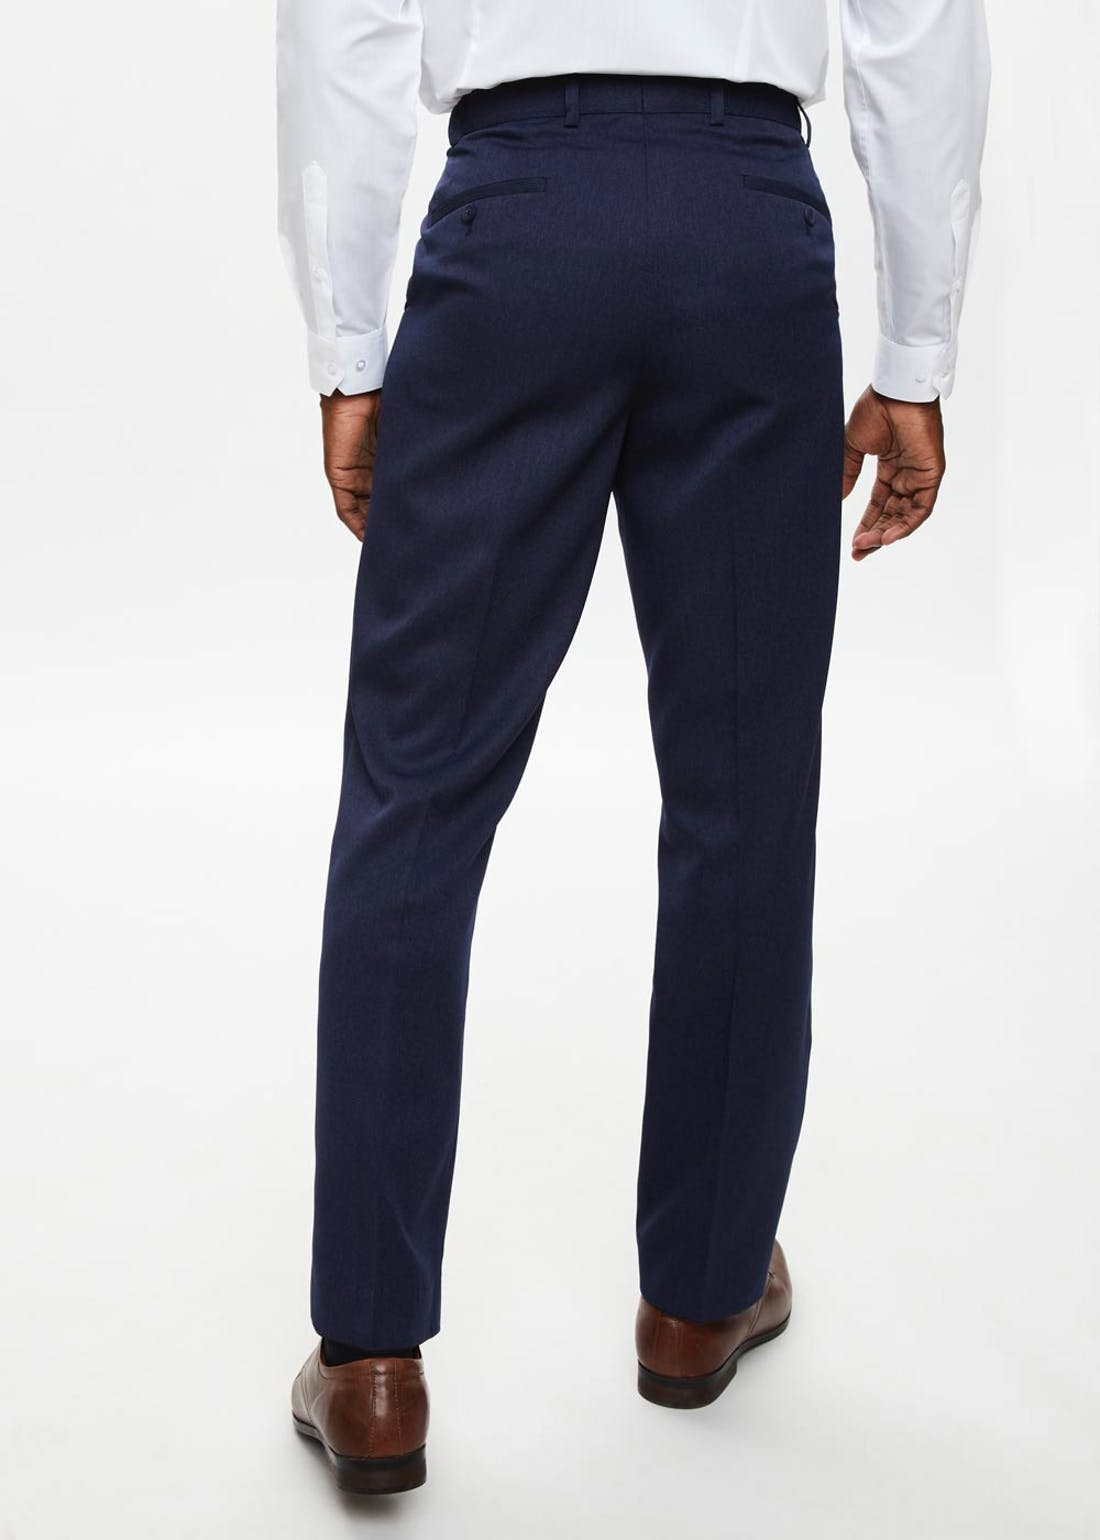 Taylor & Wright Brushed Twill Flexi Waist Trousers